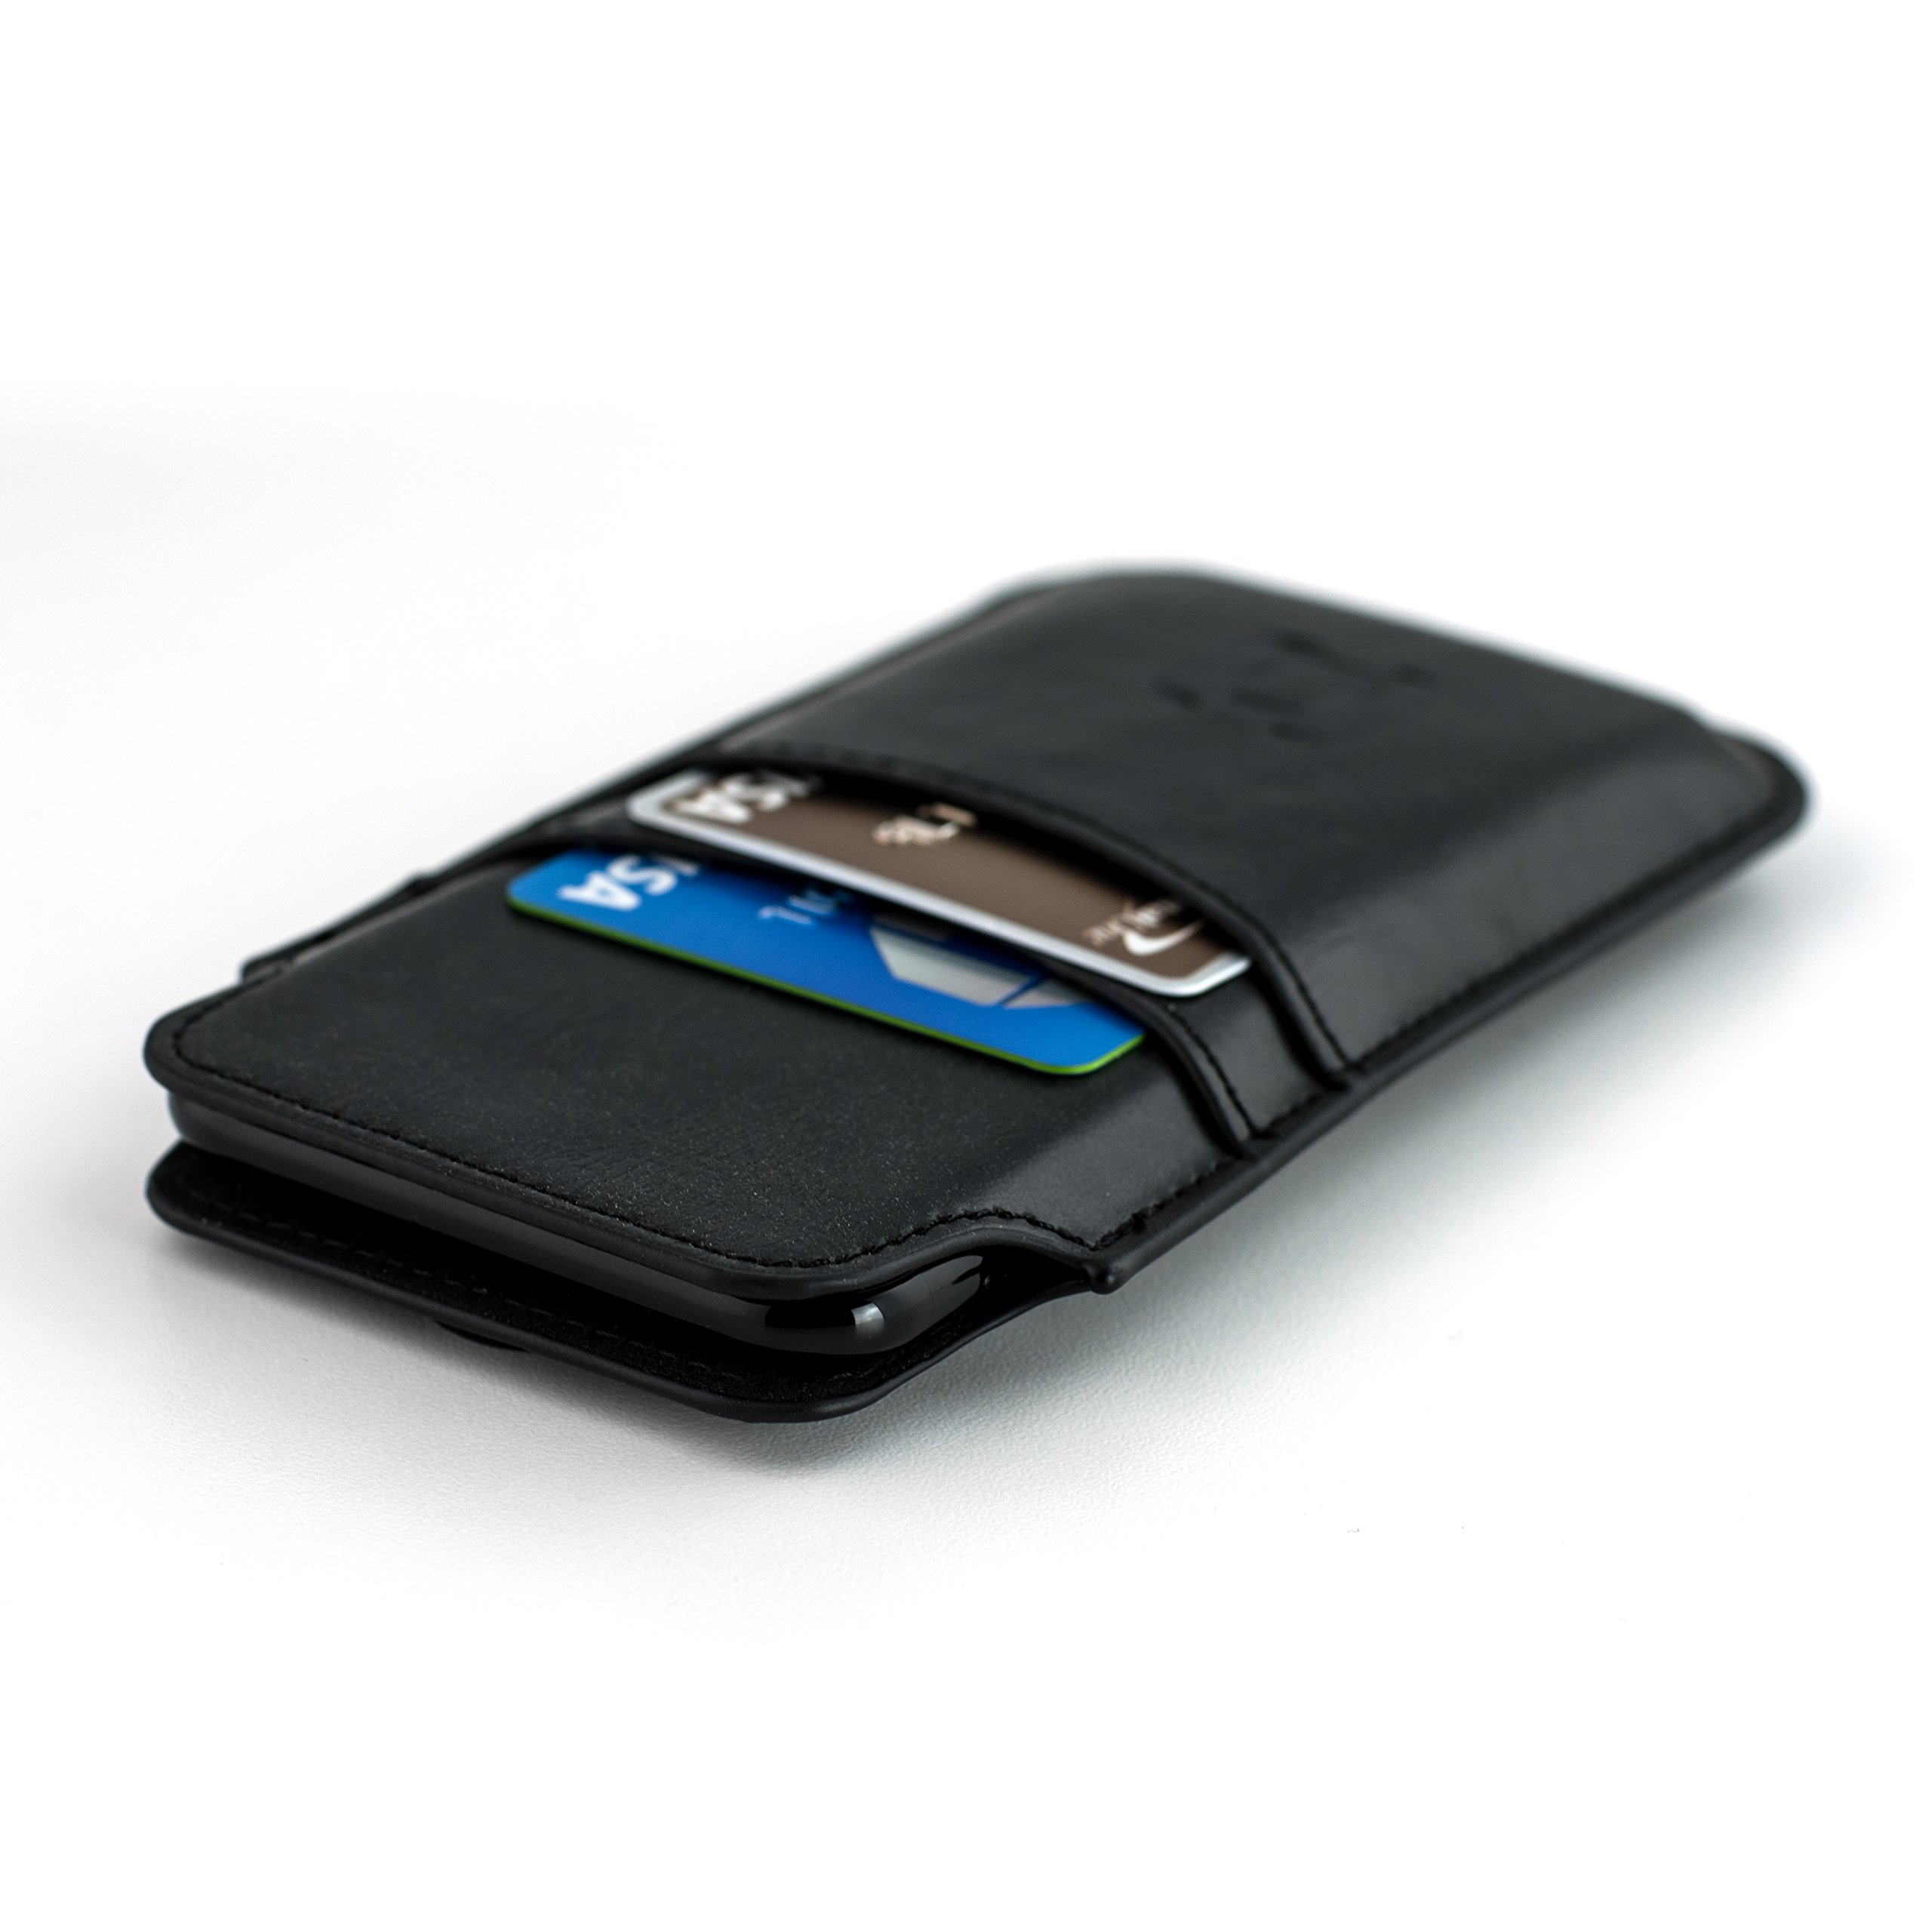 Dockem Wallet Sleeve for Google Pixel and Pixel 2 - Vintage Synthetic Leather Card Case; Ultra Slim Professional Executive Pouch Cover with 2 Card Holder Slots, Black by Dockem (Image #1)